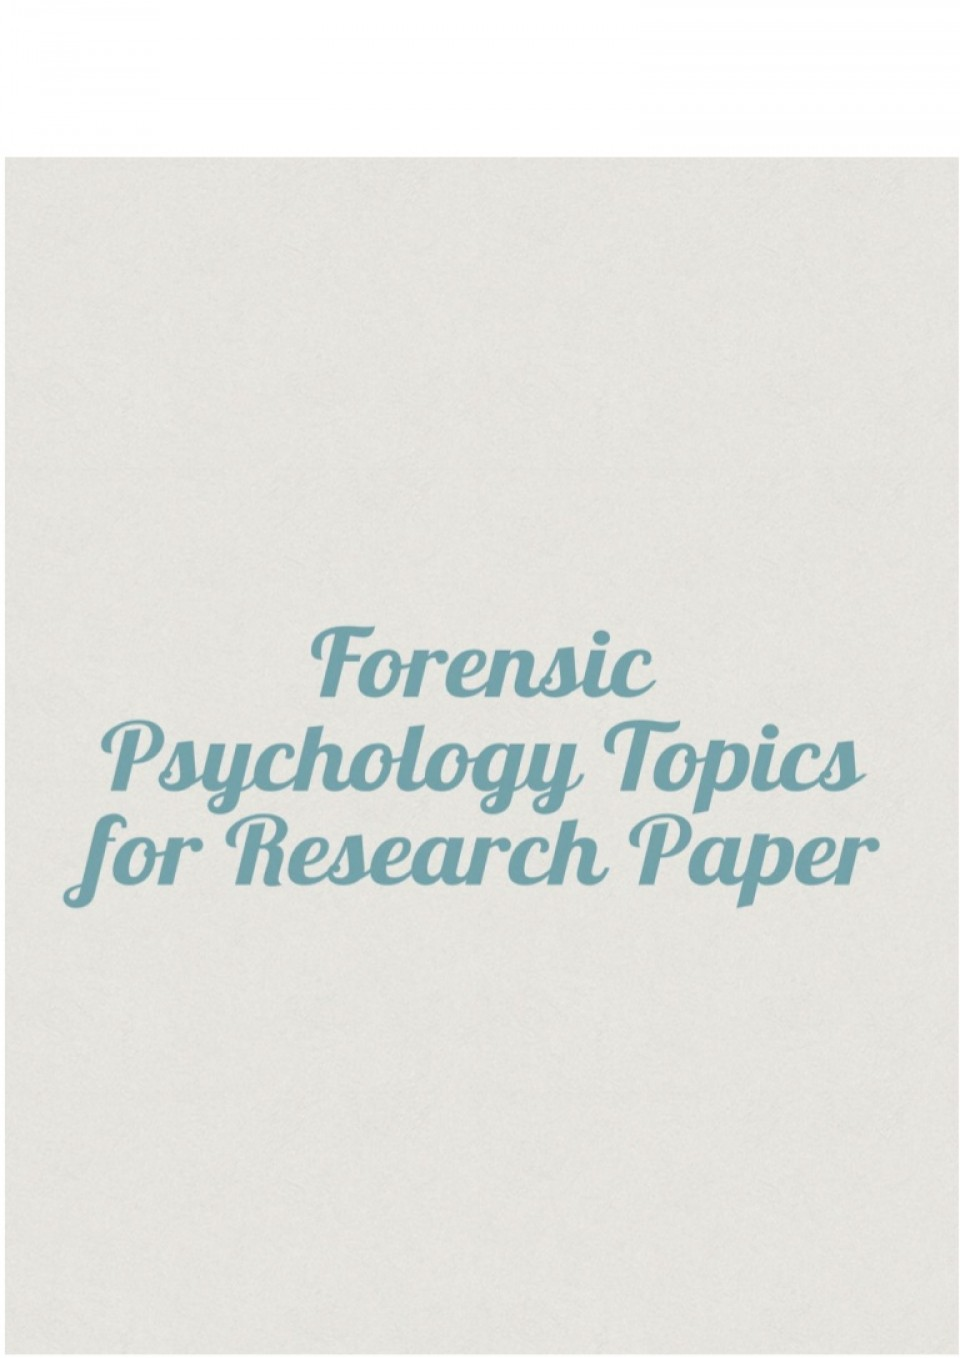 008 Psychology Topics For Research Paper Forensicpsychologytopicsforresearchpaper Thumbnail Wondrous Forensic Child Papers Controversial 960